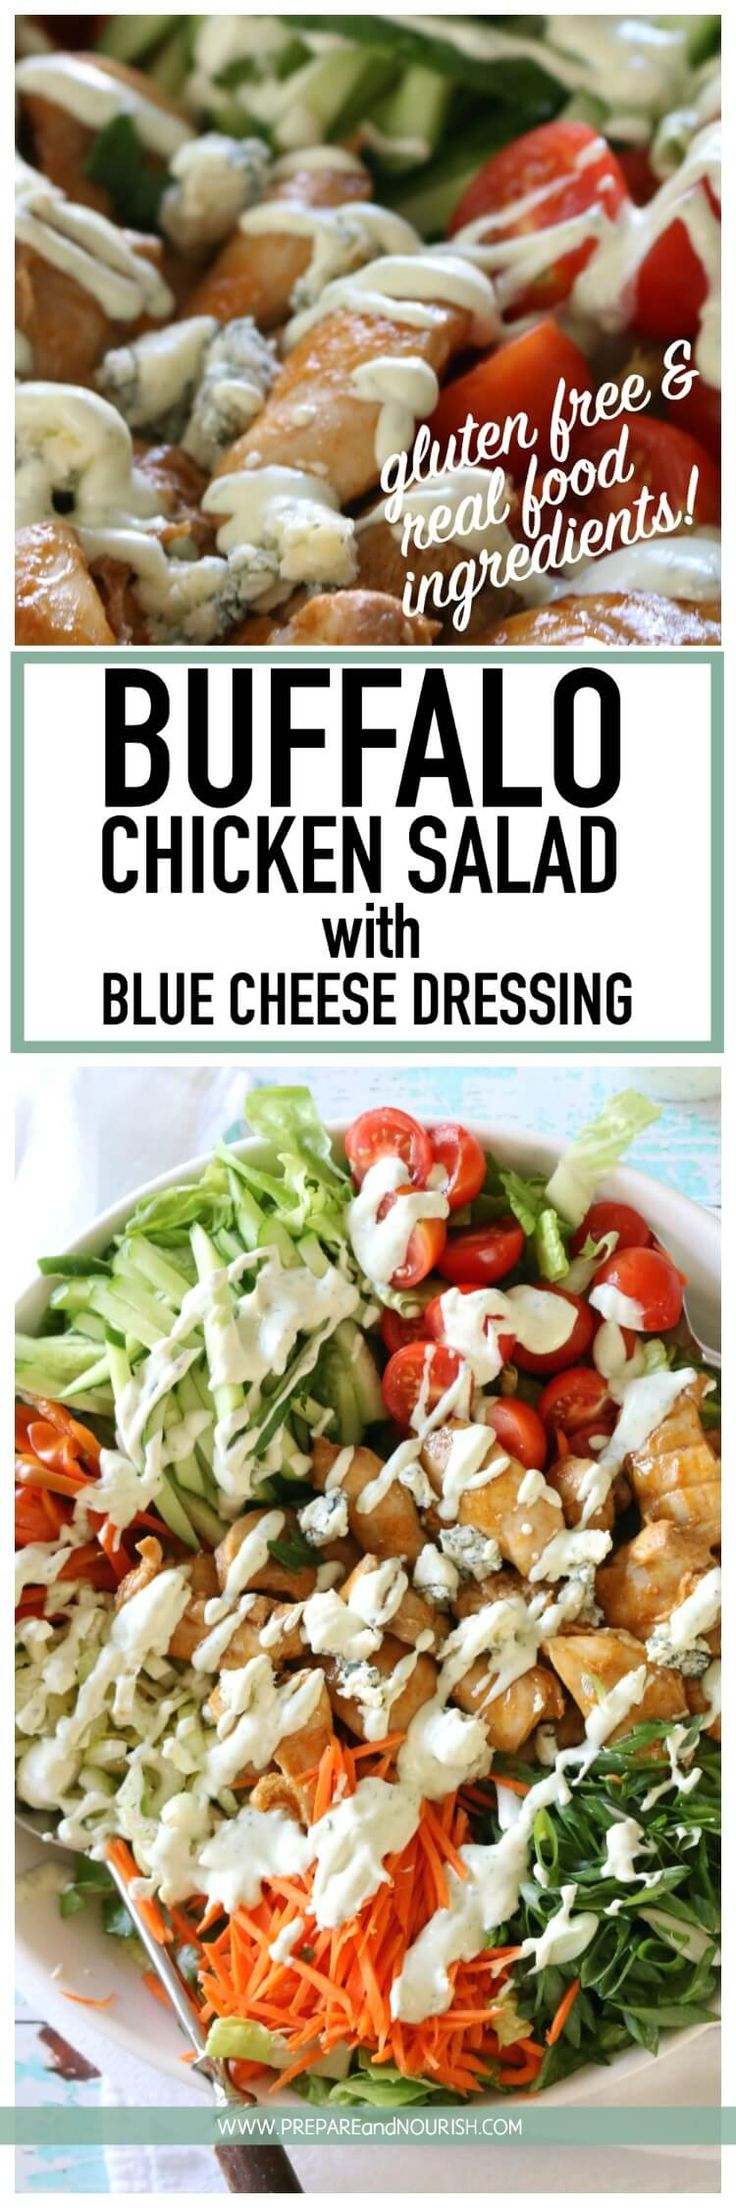 Buffalo Chicken Salad with Blue Cheese Dressing - chicken thighs marinated and glazed in buffalo sauce then baked in the oven. Add your favorite salad vegetables like butter lettuce, matchstick carrots and grape tomatoes. Tossed to perfection with tangy Blue Cheese Dressing, makes an easy summer meal! via @preparenourish